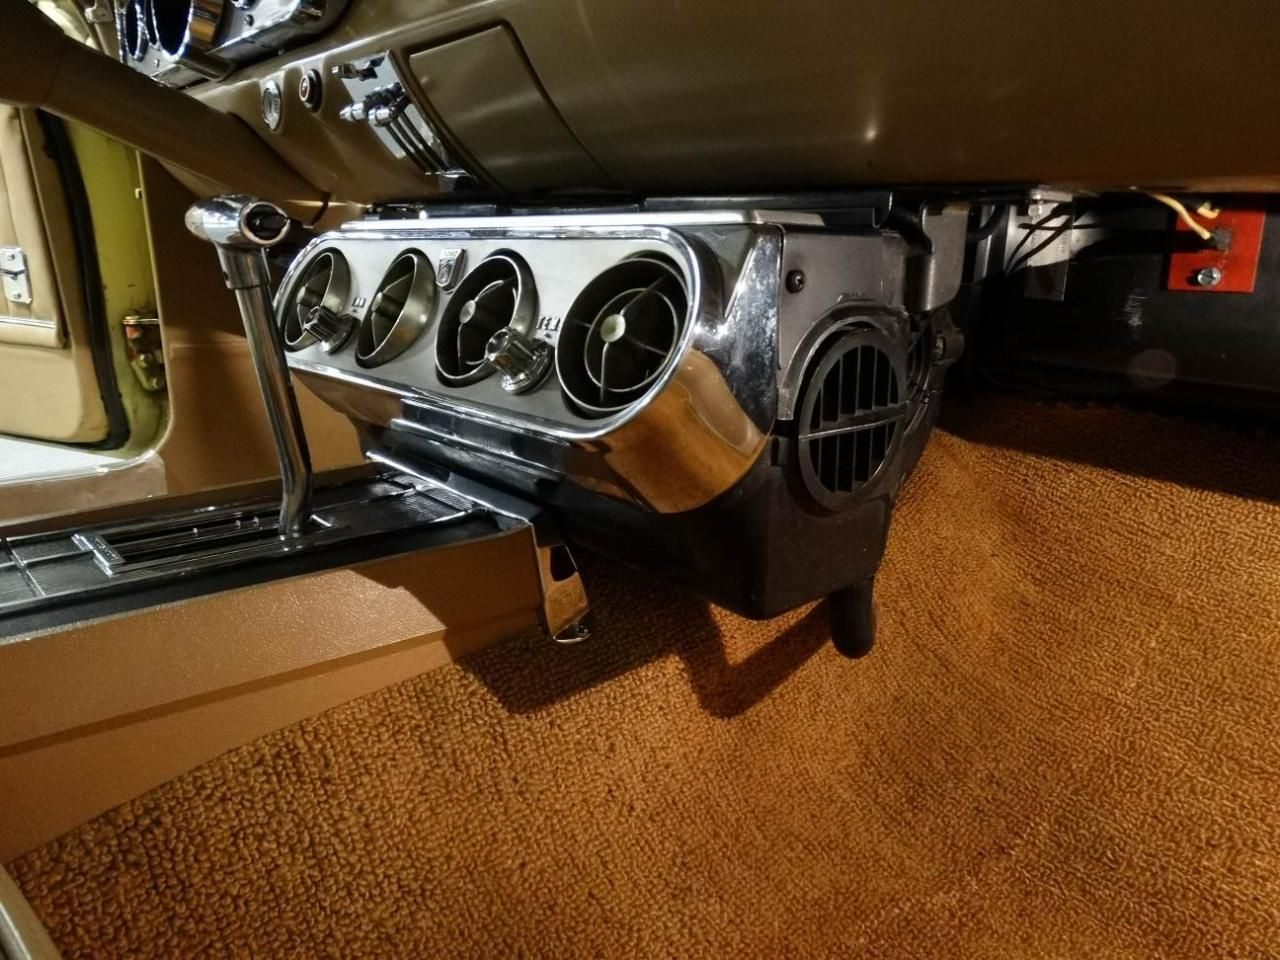 1965 Ford Mustang 289 Cid V8 C4 3 Speed Automatic Ford Mustang Mustang Interior Mustang